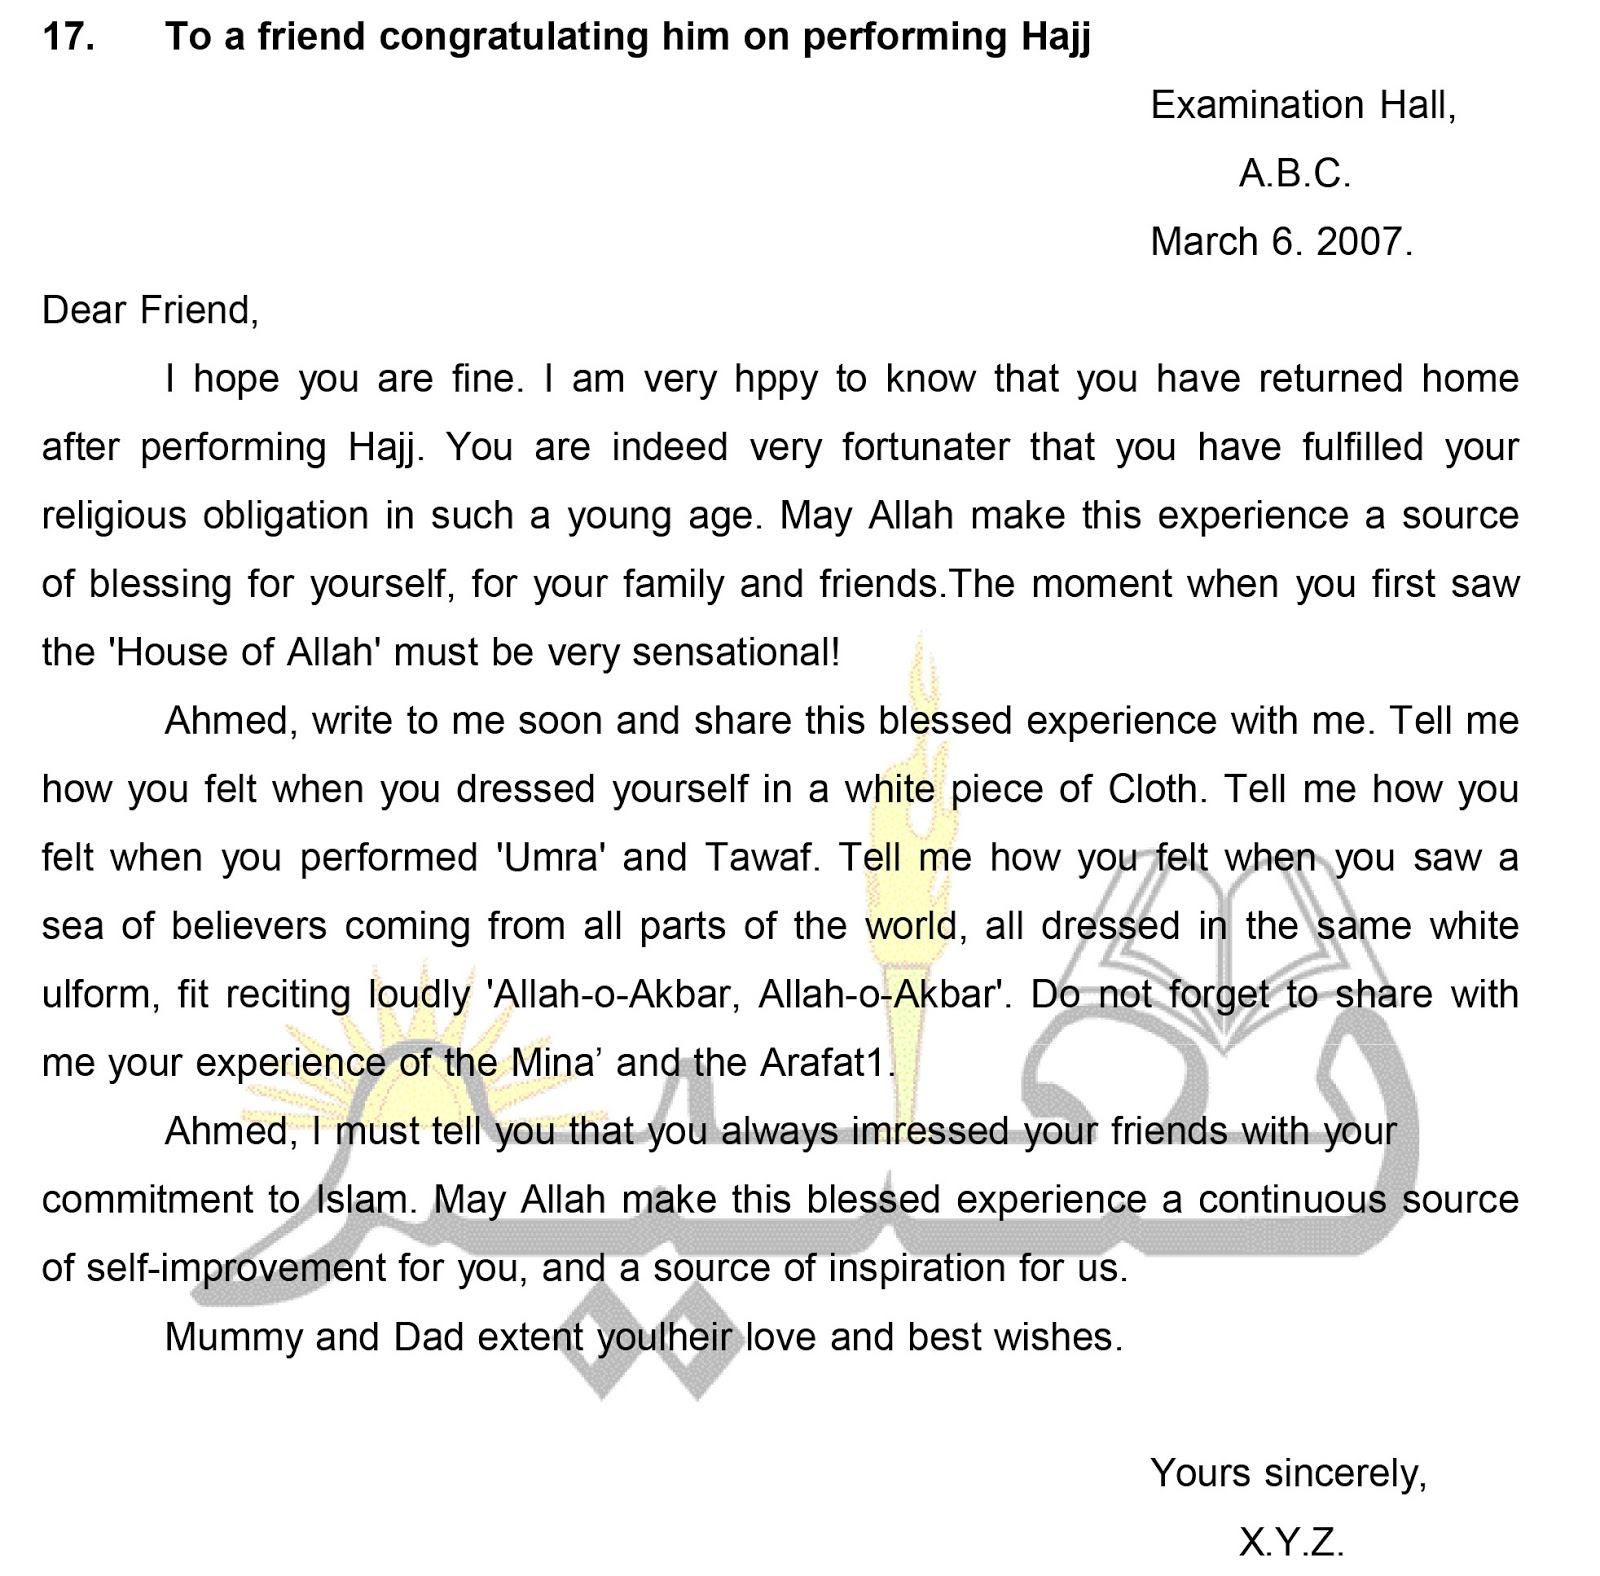 to a friend congratulating him on performing hajj